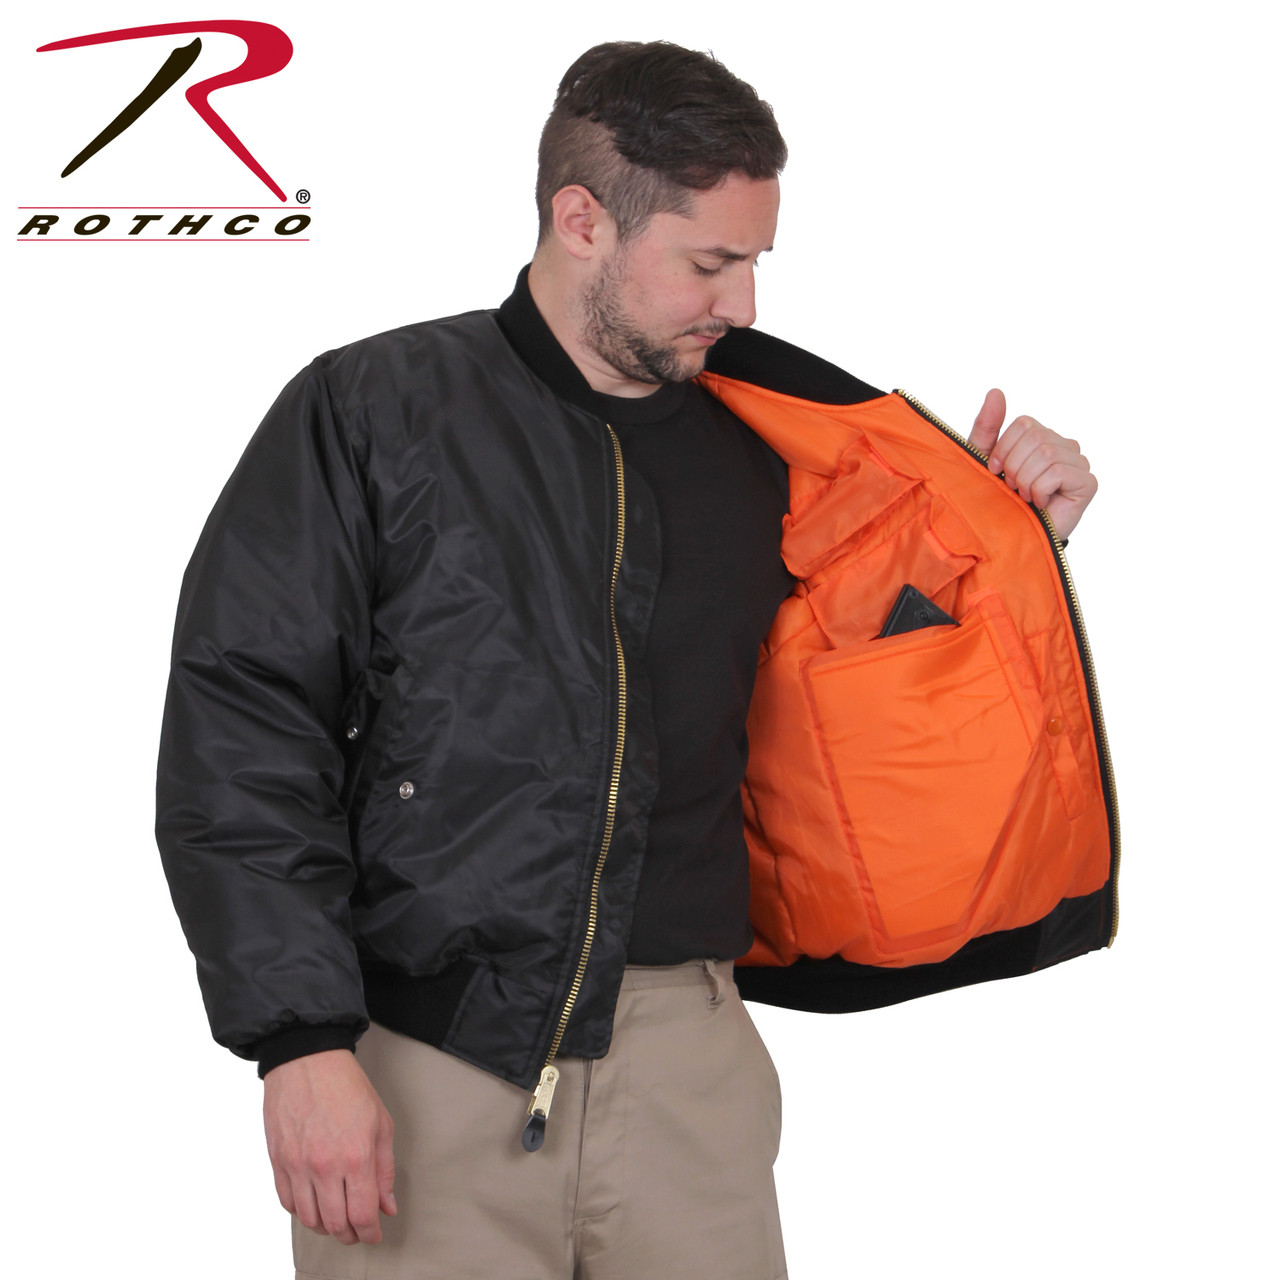 **(NEW-OFFICIALLY-MILITARY-TACTICAL-CONCEALED-CARRY-FLIGHT-JACKETS/PREMIUM-WARM-SOFT-SHELL & WATER-PROOF,MA-1>FLIGHT-CONCEALED-CARRY-MILITARY-STYLE-JACKET)**